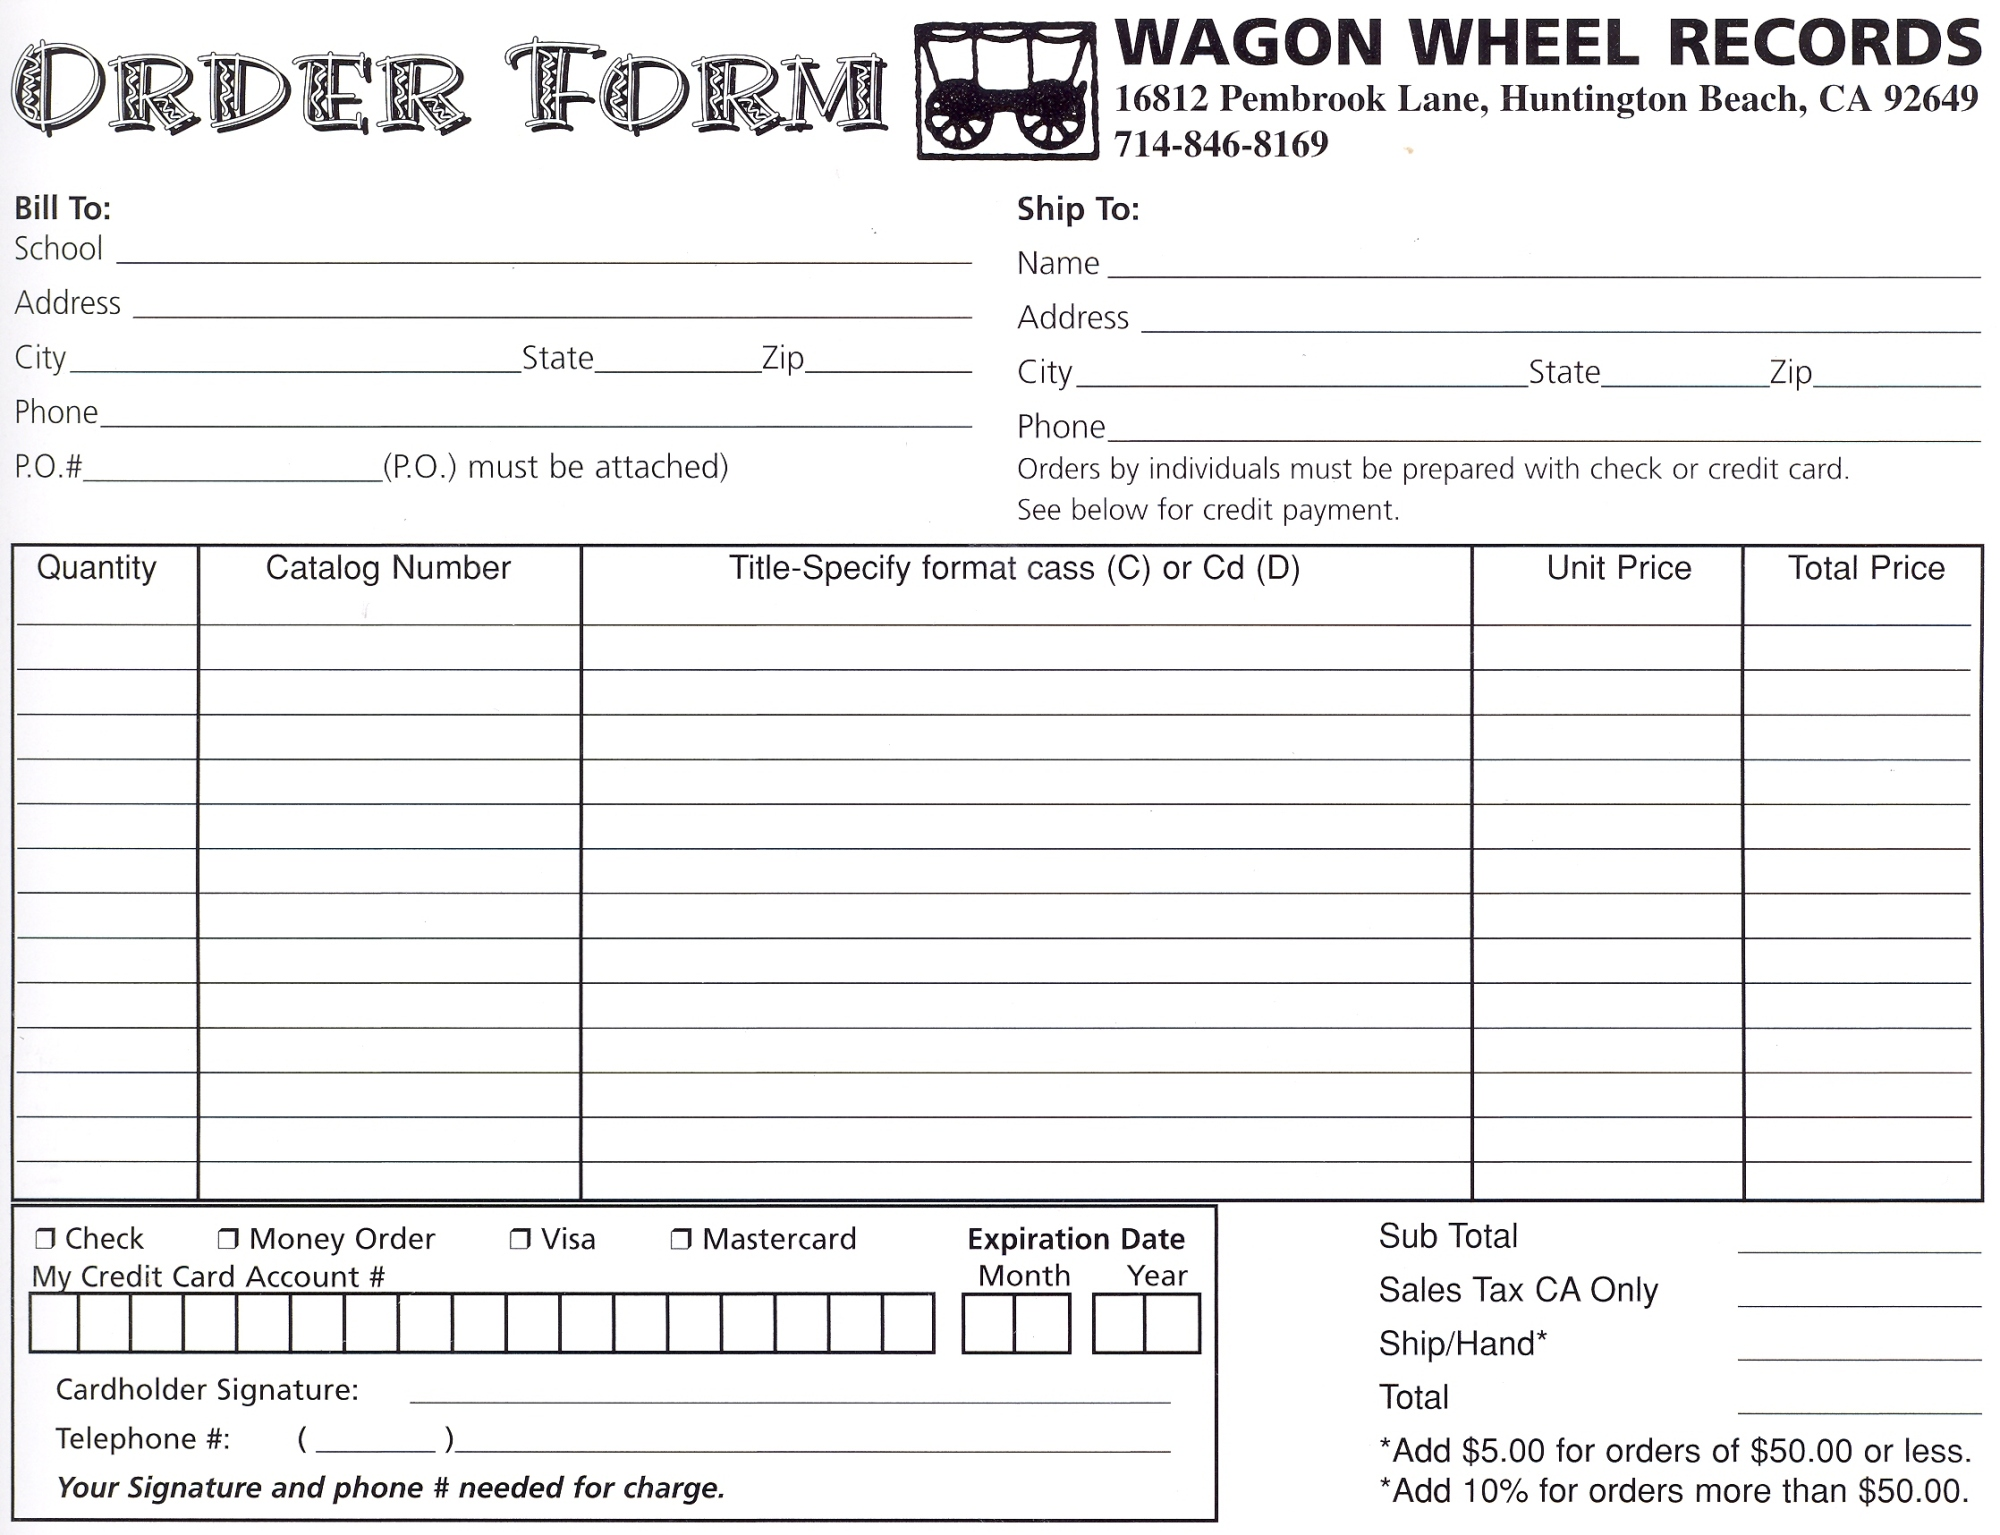 Order Form Printing Print This Order Form